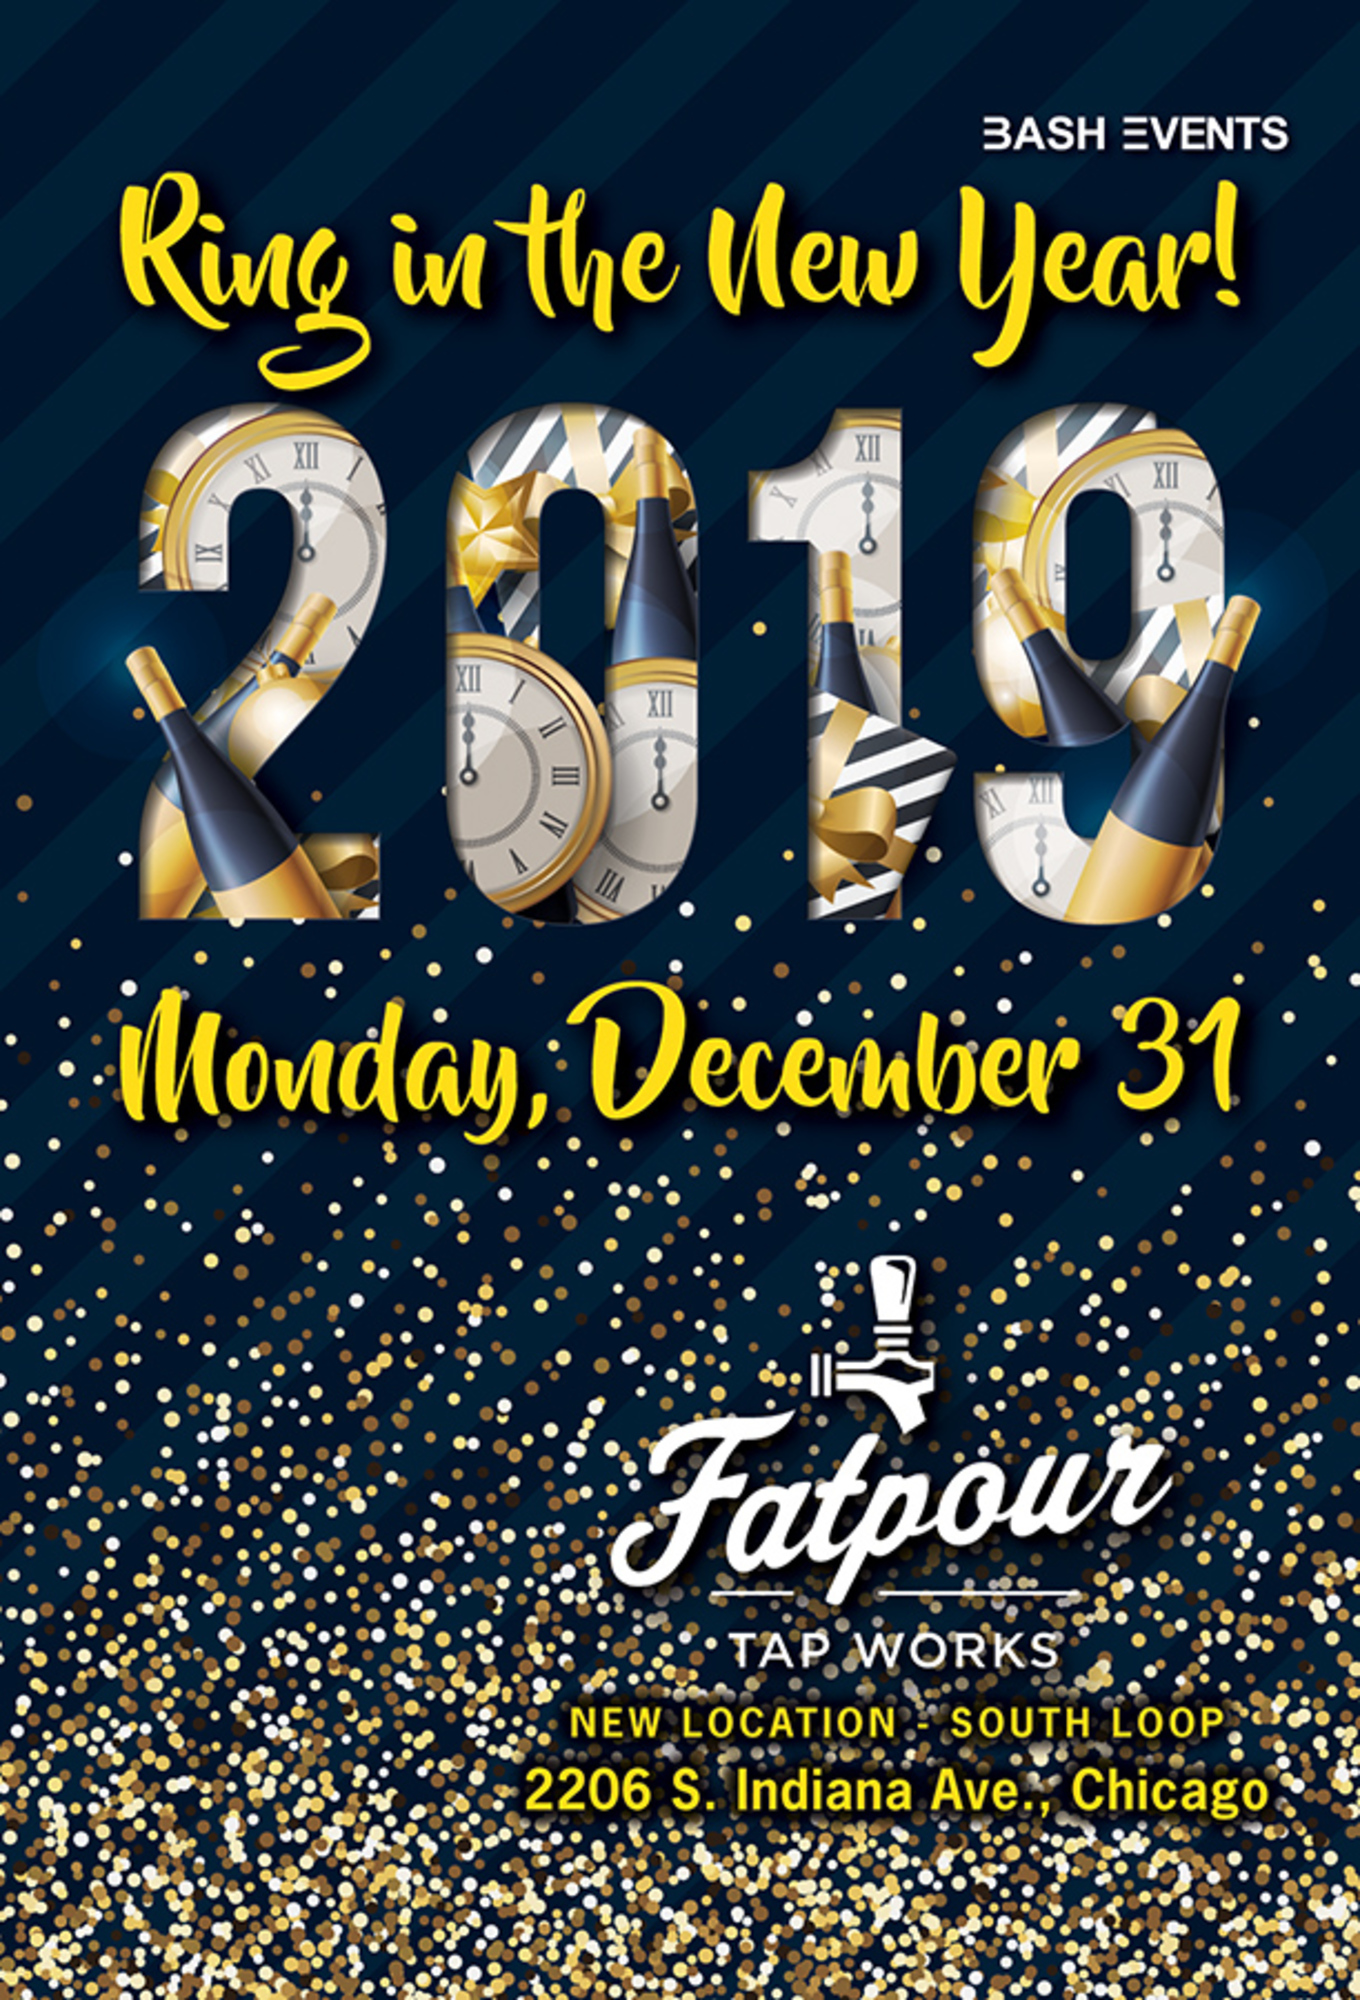 New Years Eve Events 2019 New Year's Eve 2019: Fatpour Tapworks (McCormick)   Tickets